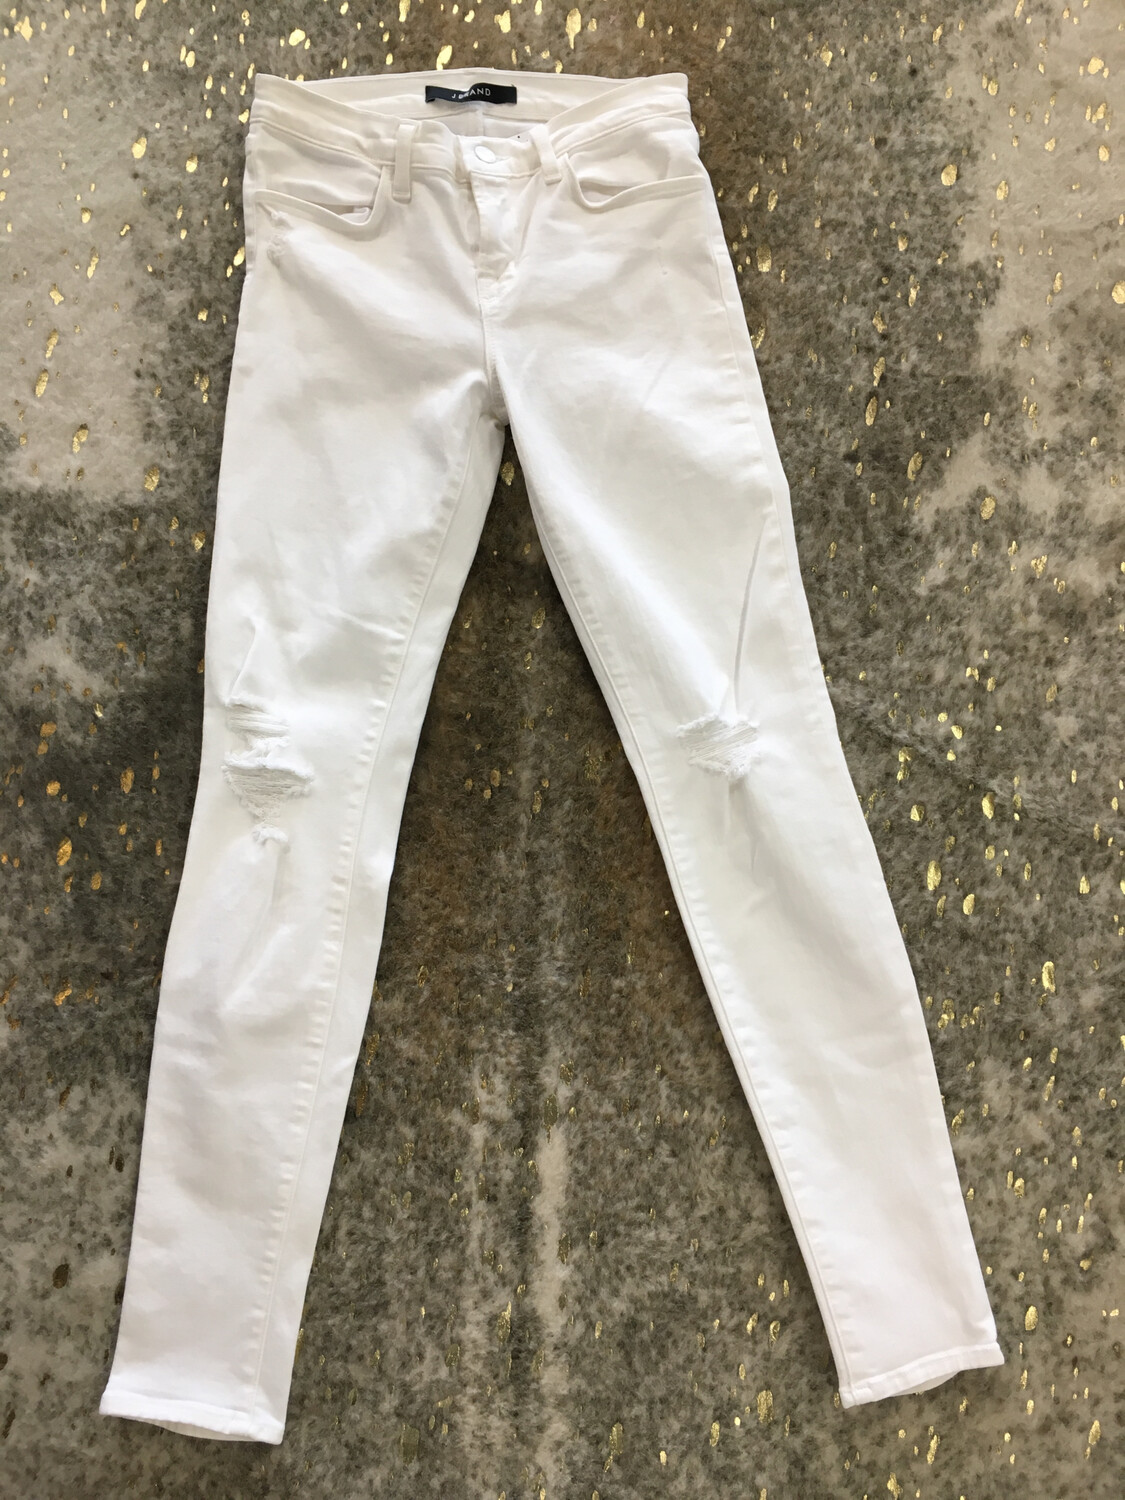 J Brand White Distressed Jeans - Size 26